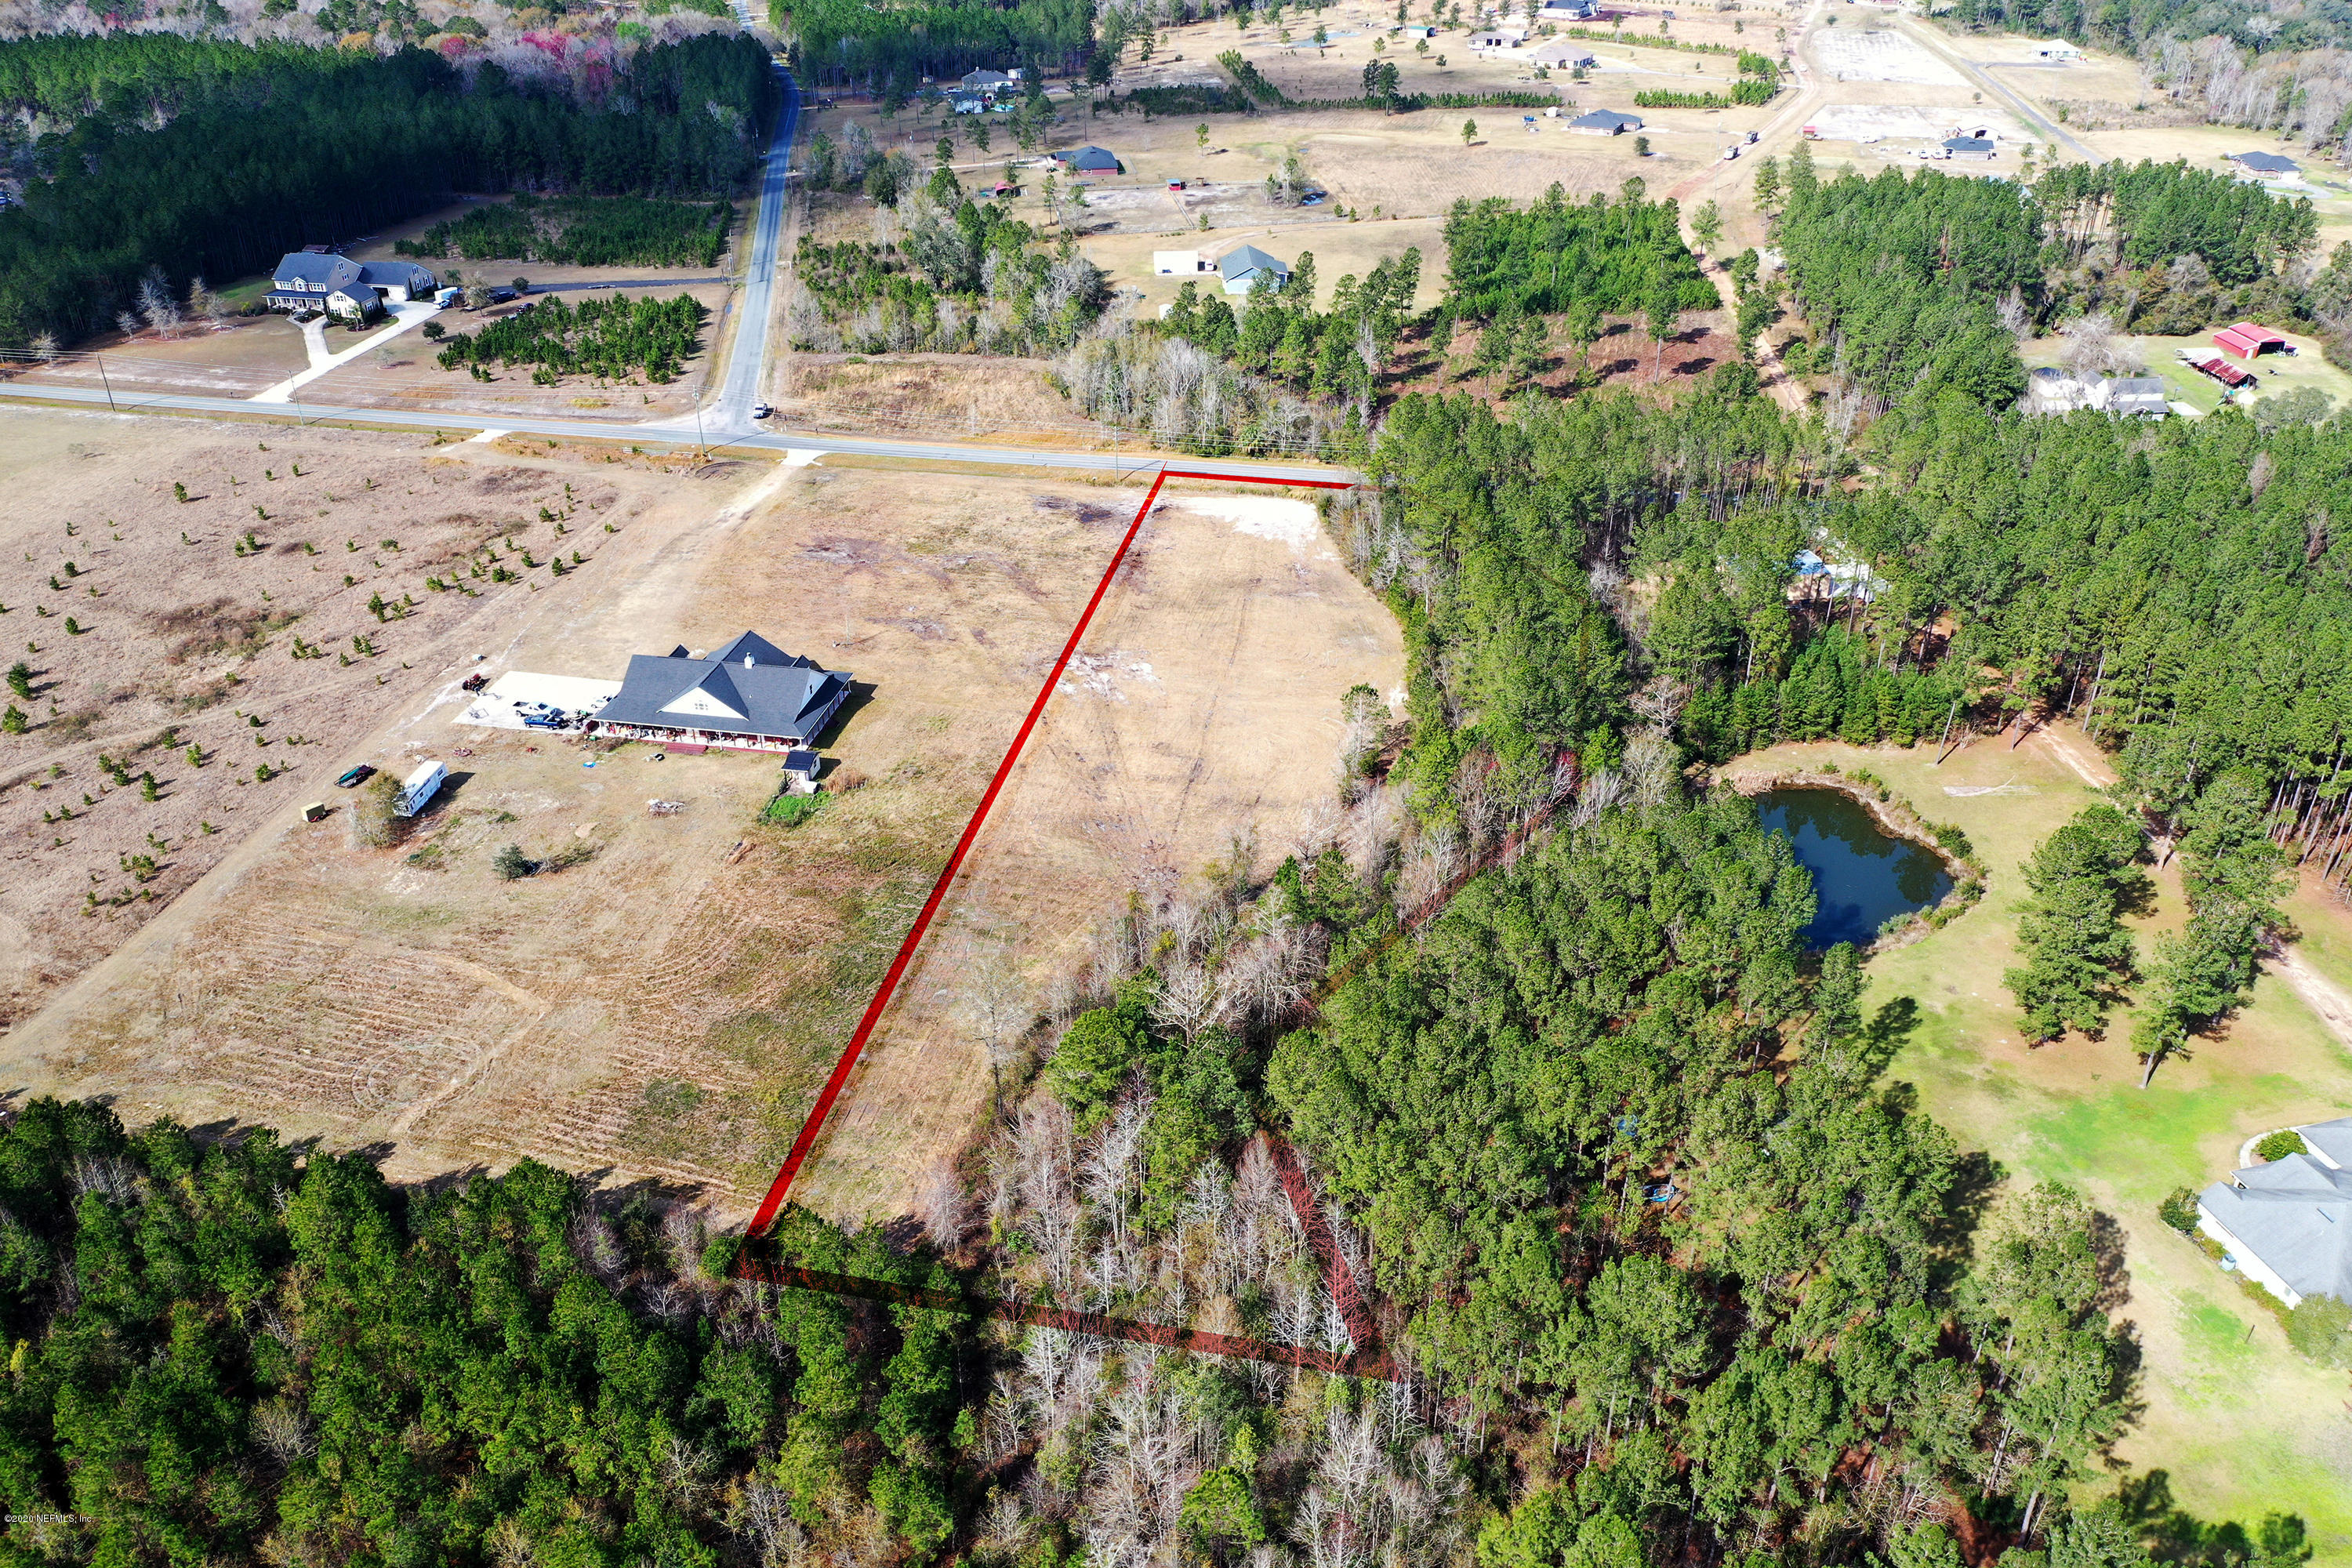 000 MUSSLEWHITE, CALLAHAN, FLORIDA 32011, ,Vacant land,For sale,MUSSLEWHITE,1038025